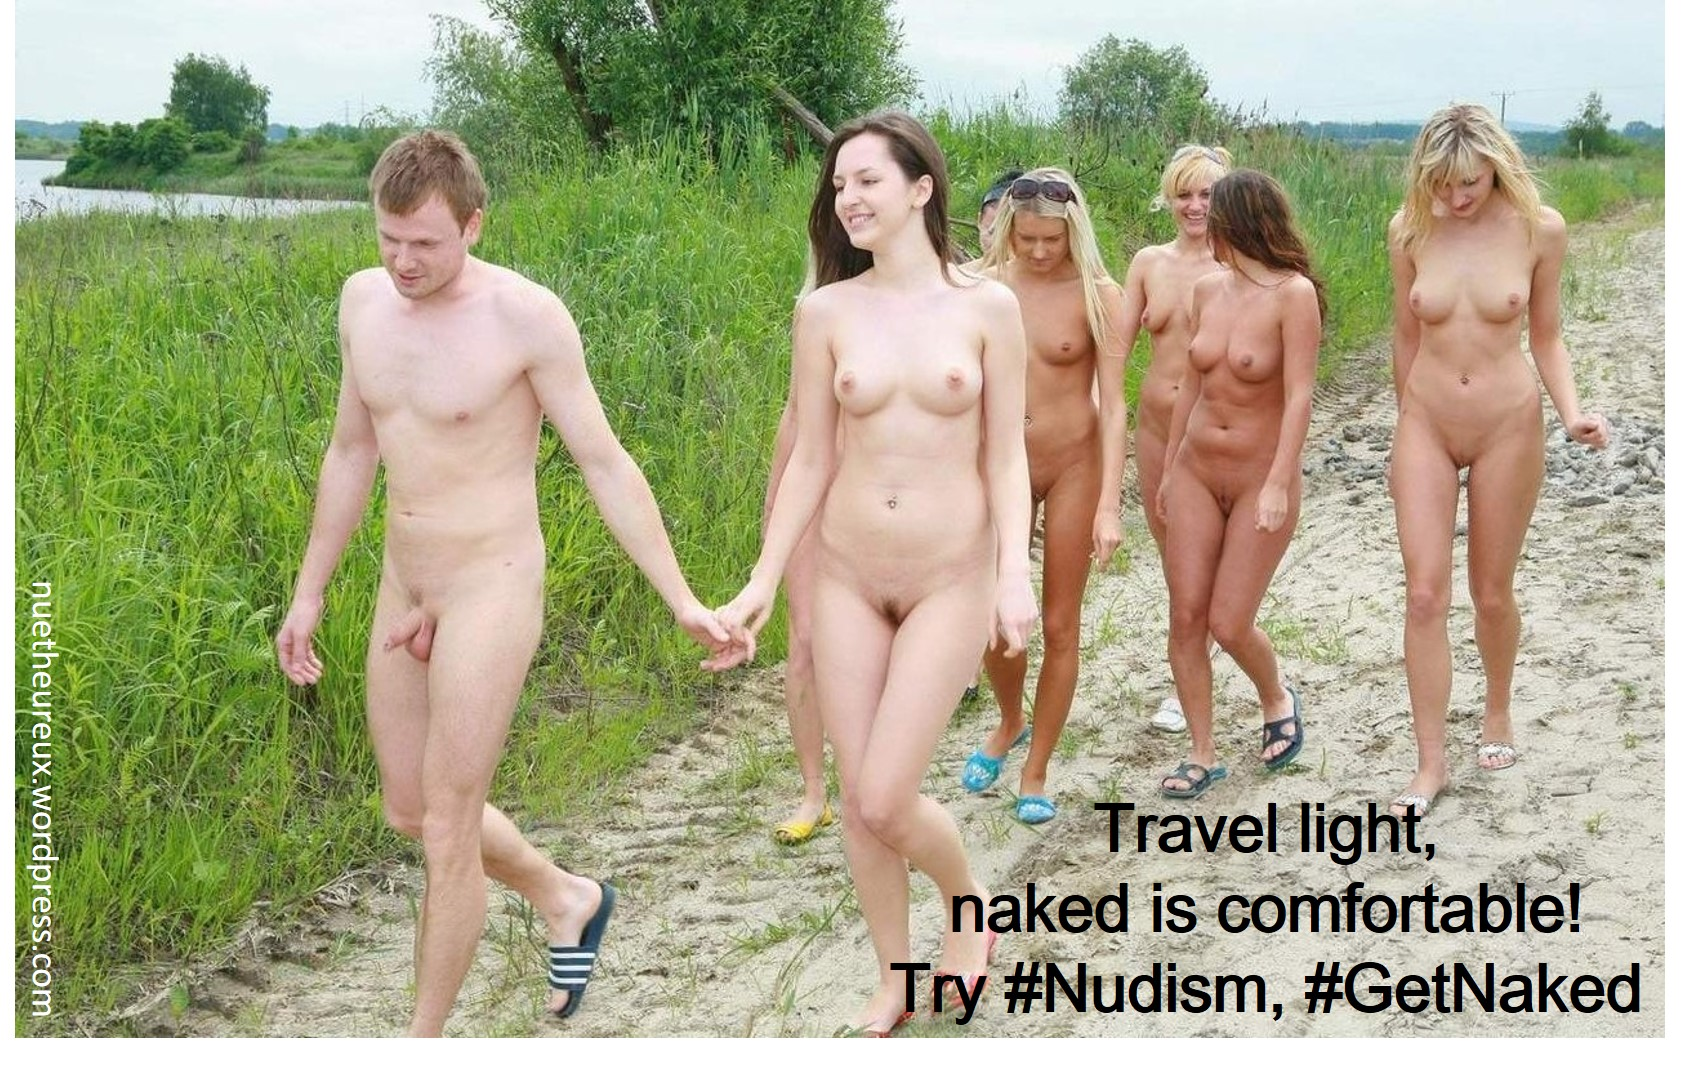 Nudist places to visit